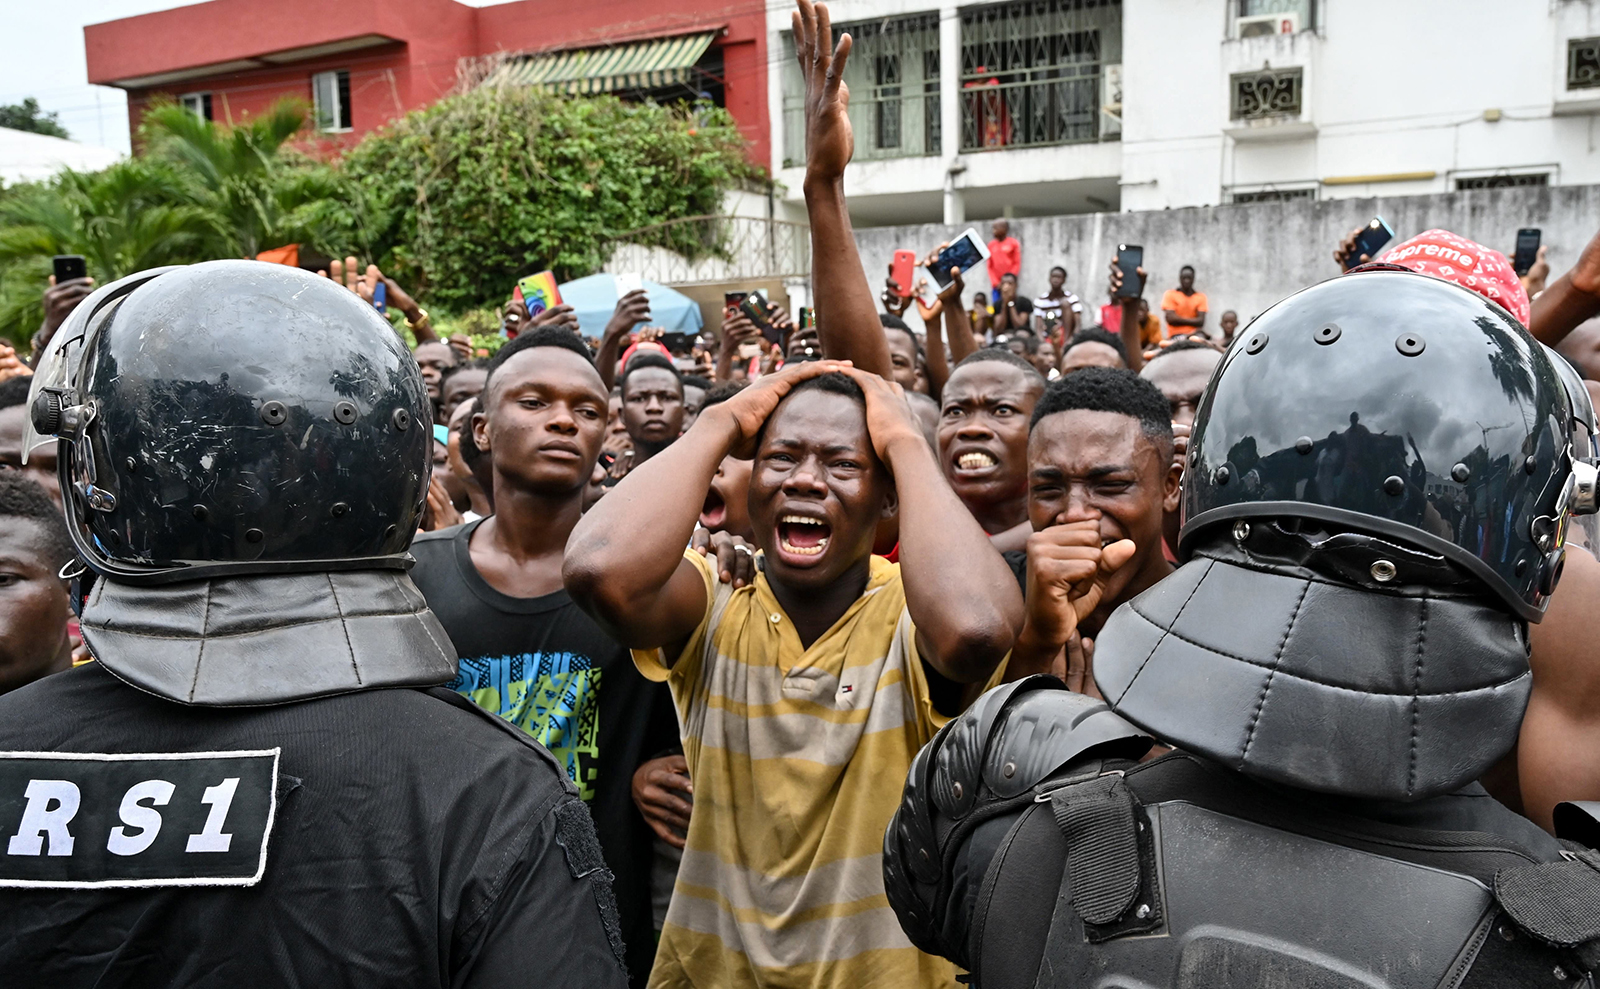 Fans cry outside an hospital in Abidjan after Ivorian singer DJ Arafat, one of the Ivory Coast's most popular artists, died at the age of 33 following a motorcycle accident on Aug. 12. ISSOUF SANOGO/AFP/Getty Images